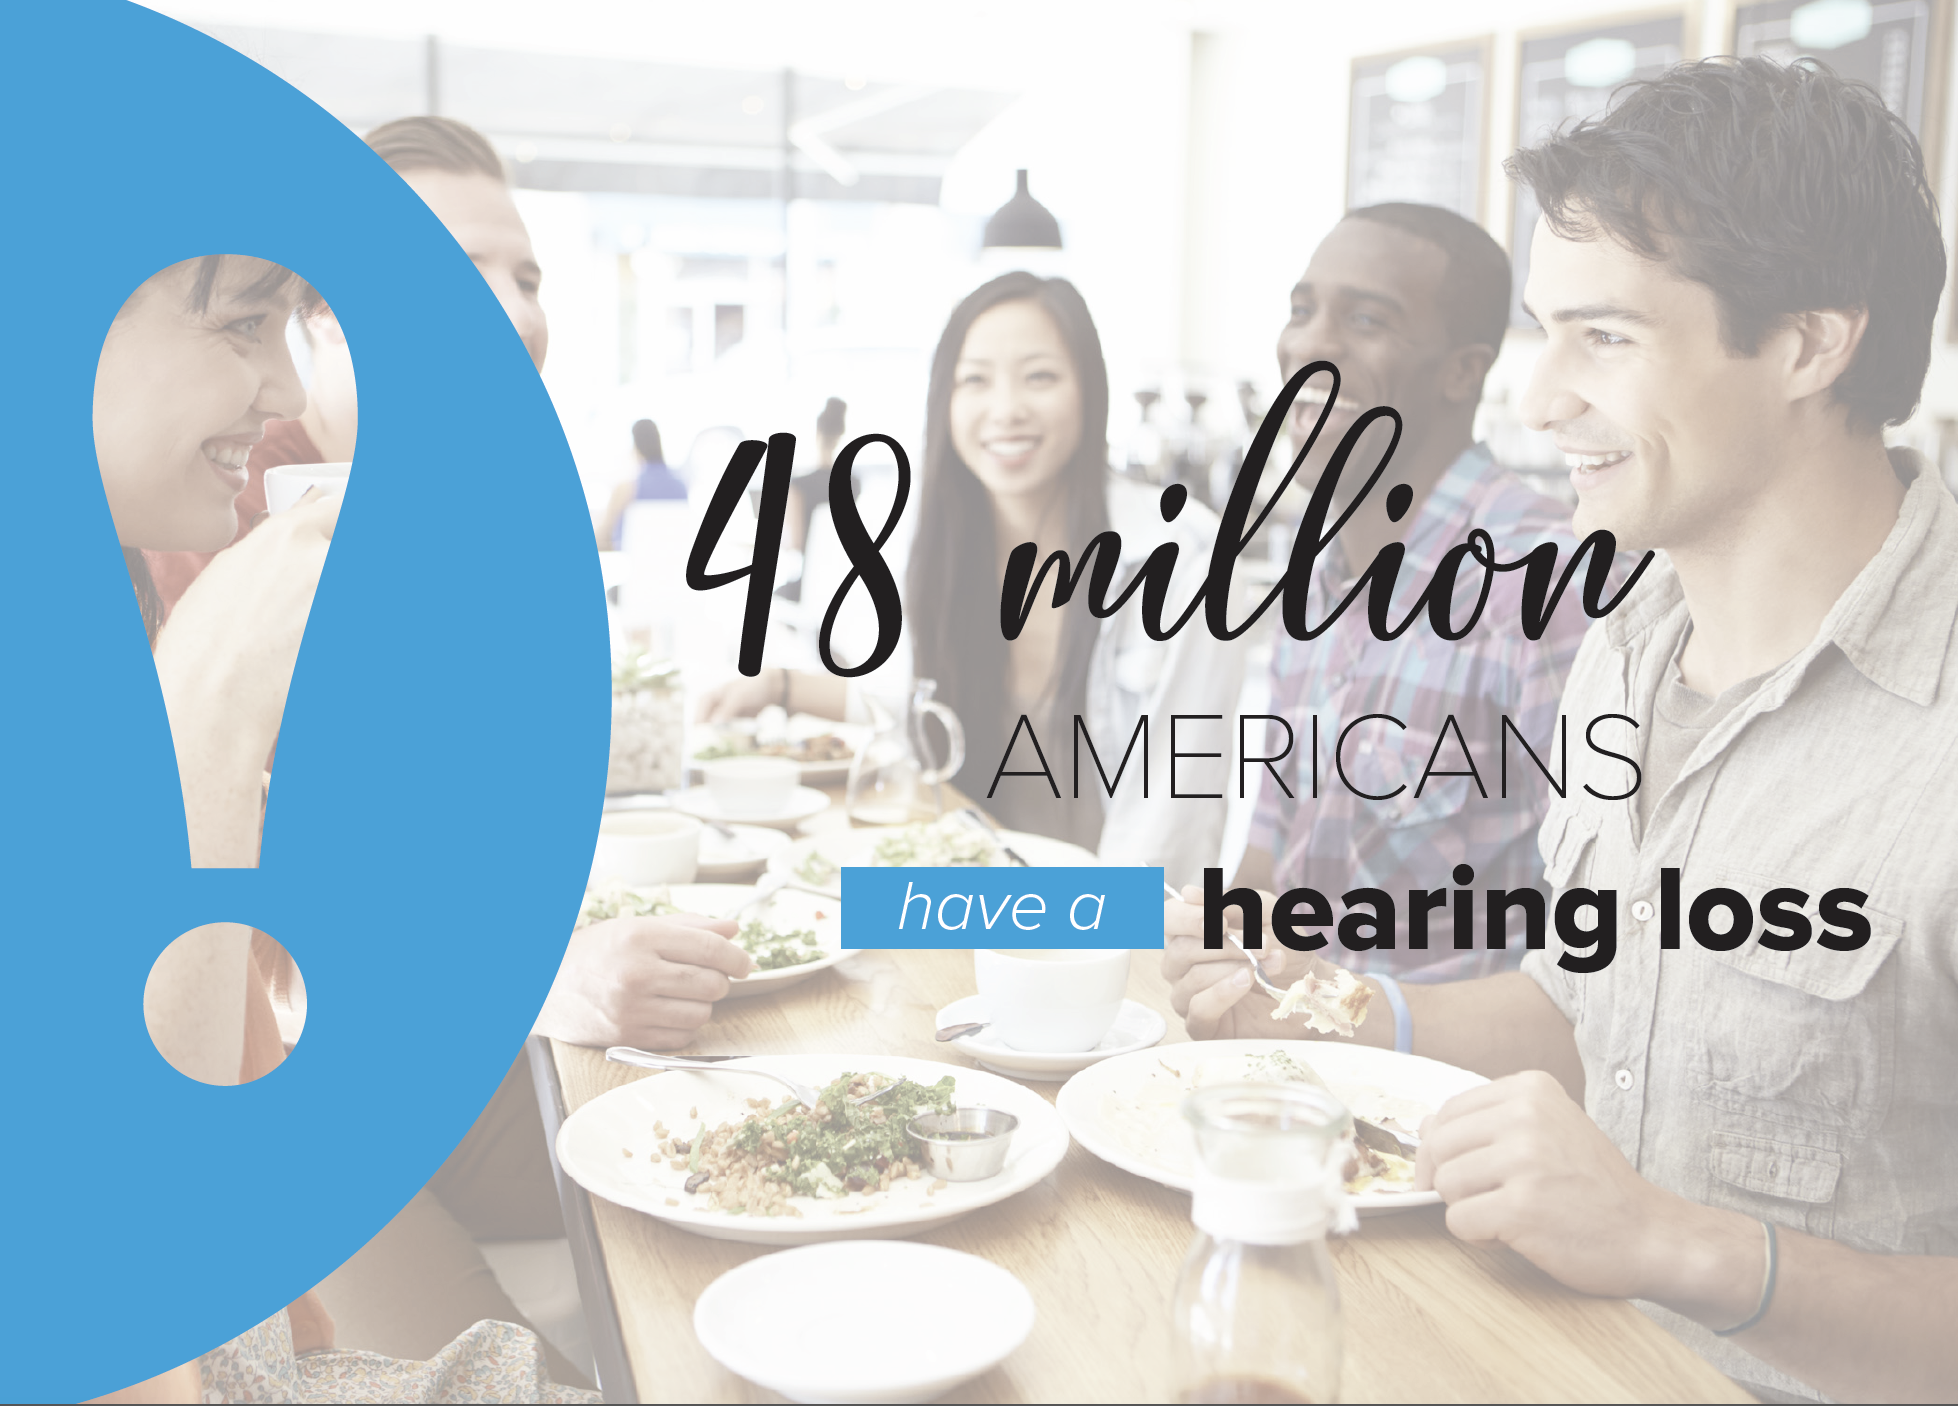 48_million_americans_have_hearing_loss